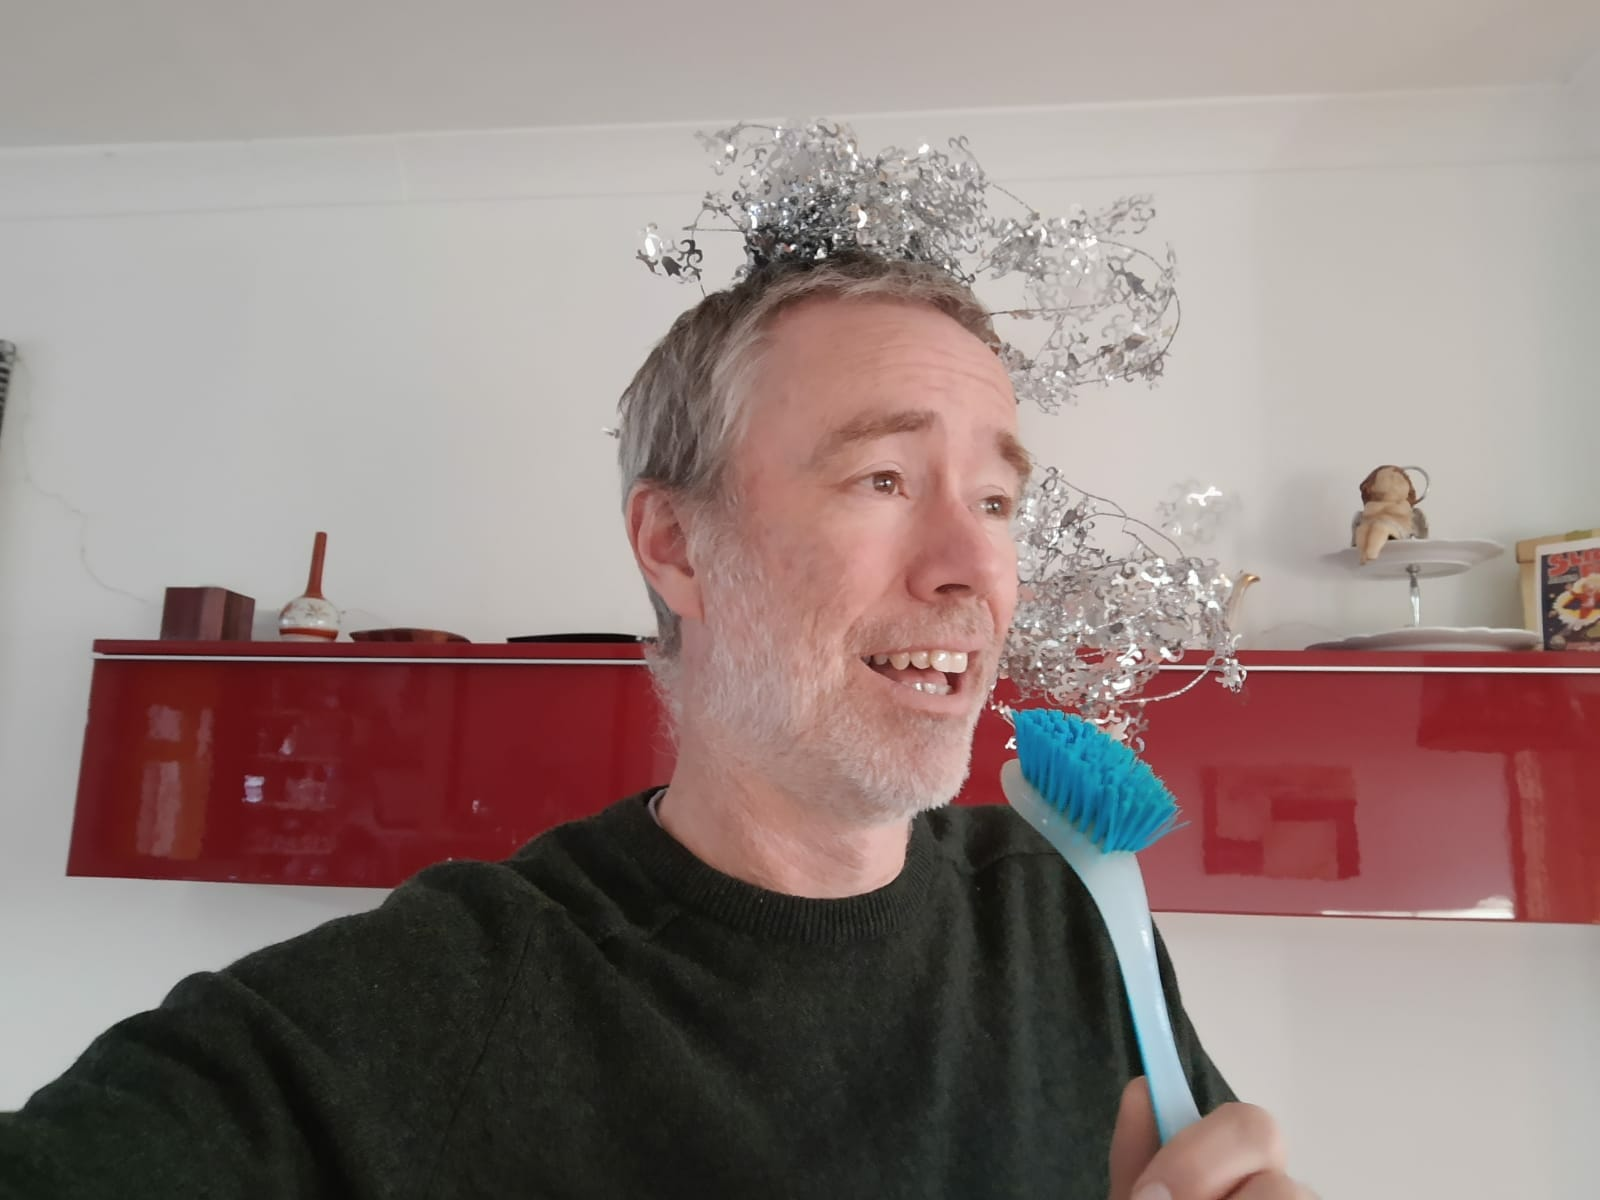 Delegate lip syncing with a kitchen utensil, while playing one of Orangeworks Christmas team building activities.